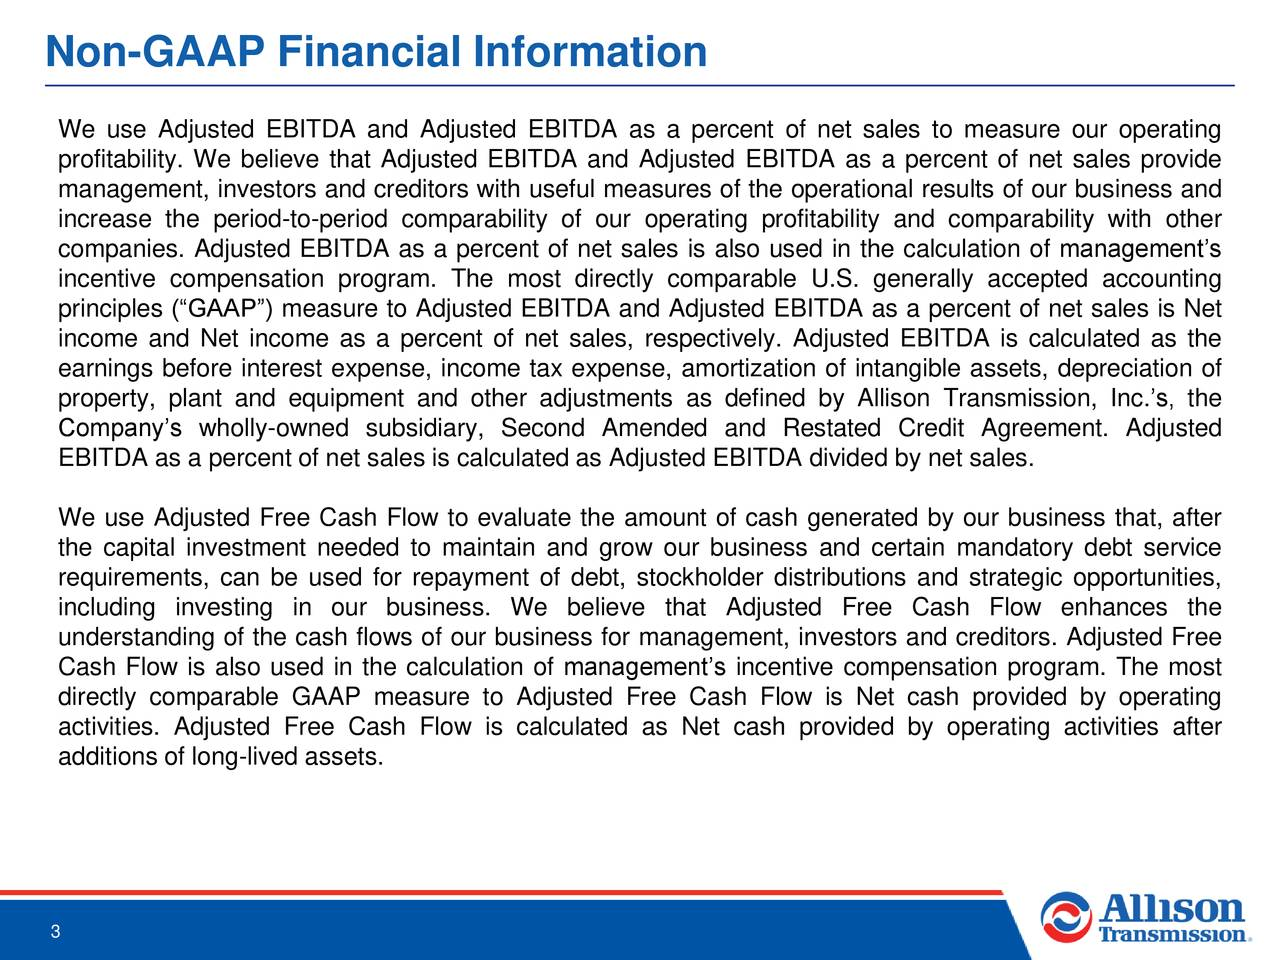 Non-GAAP Financial Information